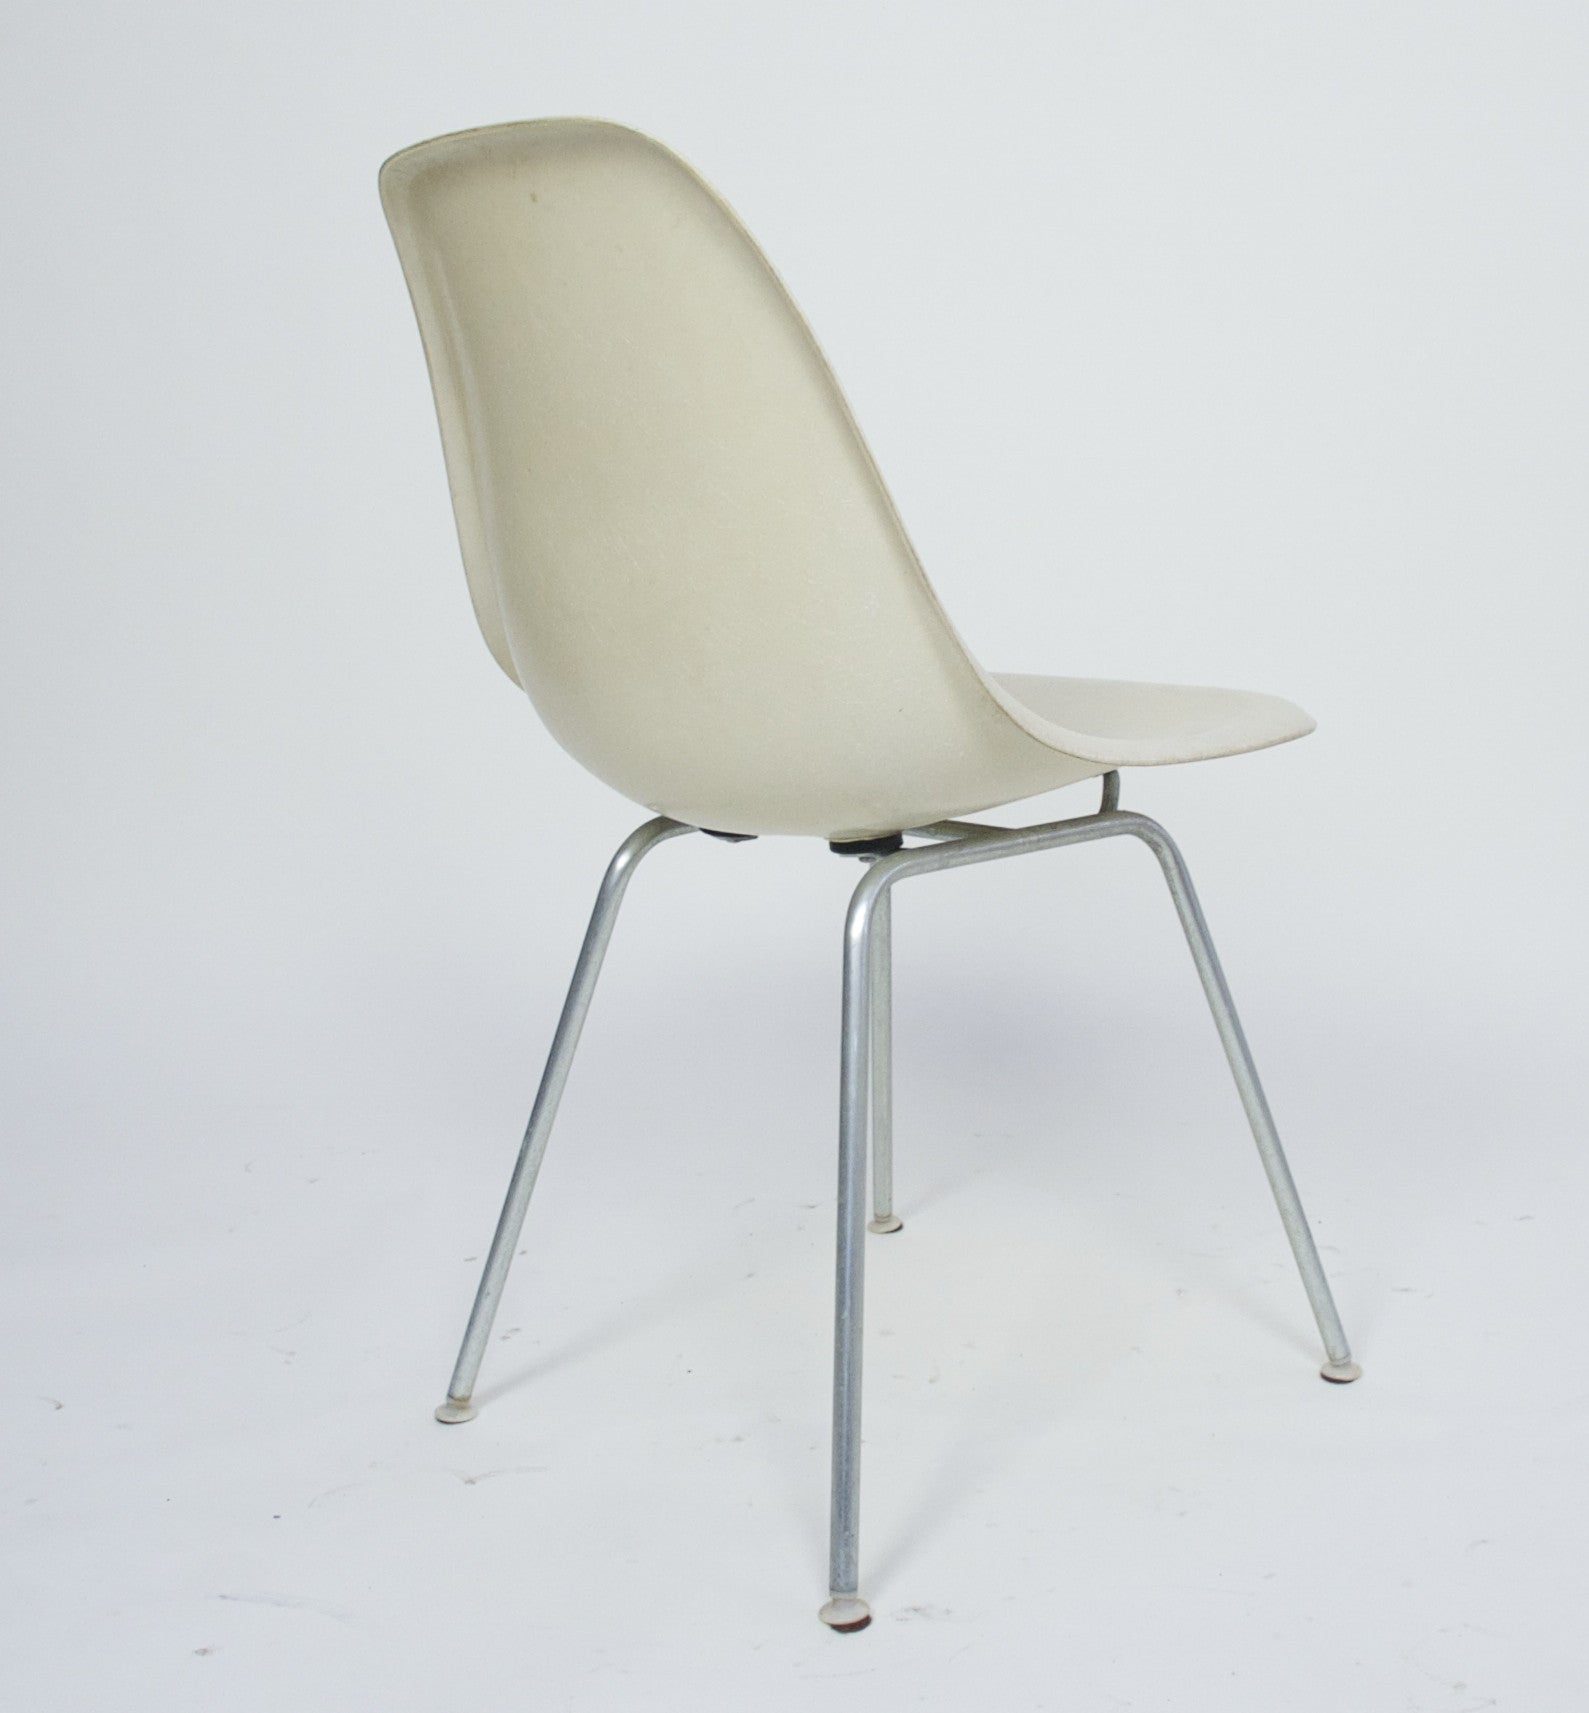 SOLD Original Set Of 6 White / Parchment Eames Herman Miller Fiberglass Shell Chairs